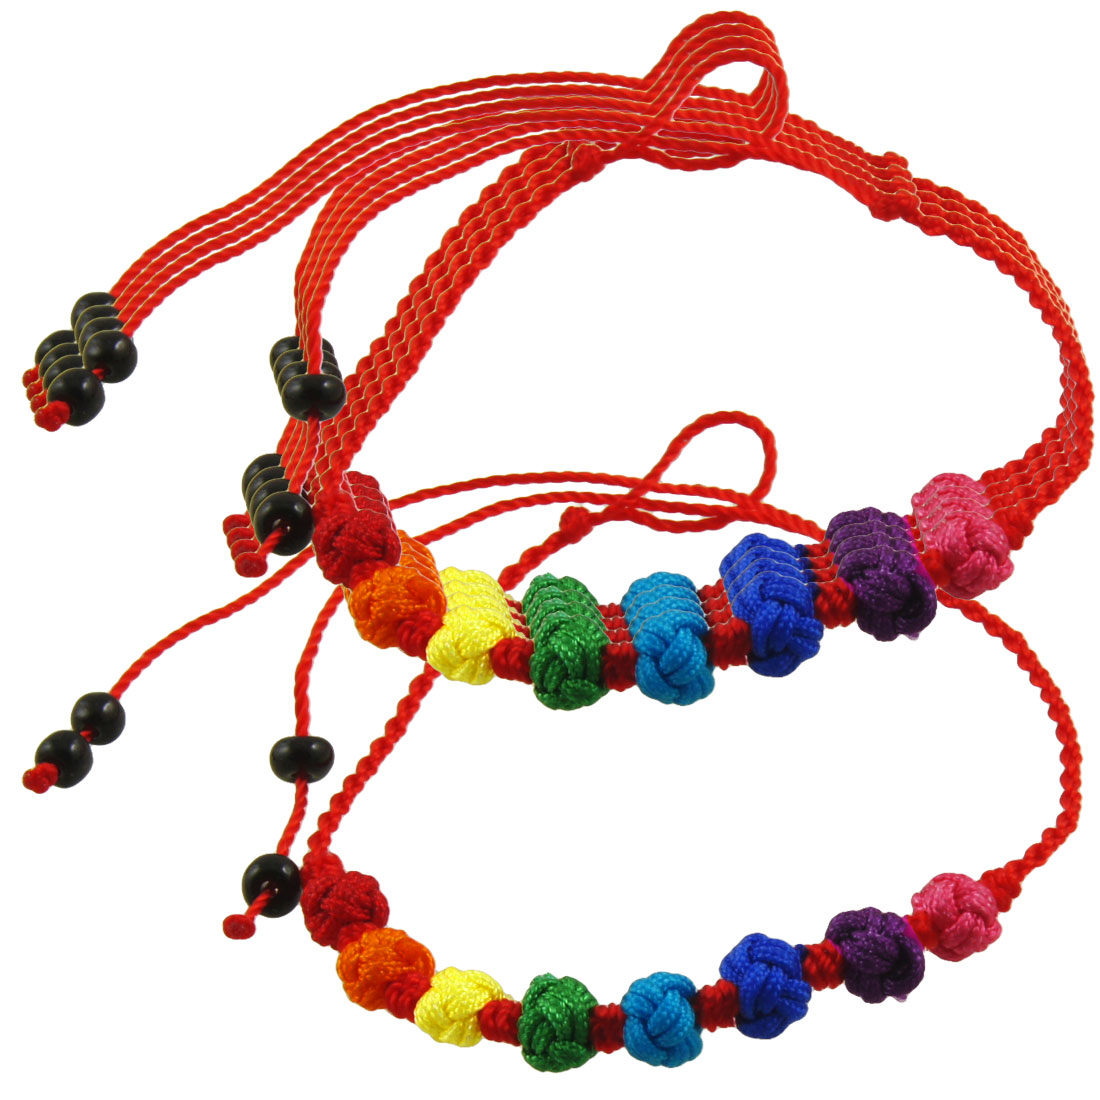 5 Pcs Colorful Braided Ball Decor Red Strand String Beads Adjustable Chain Bracelet